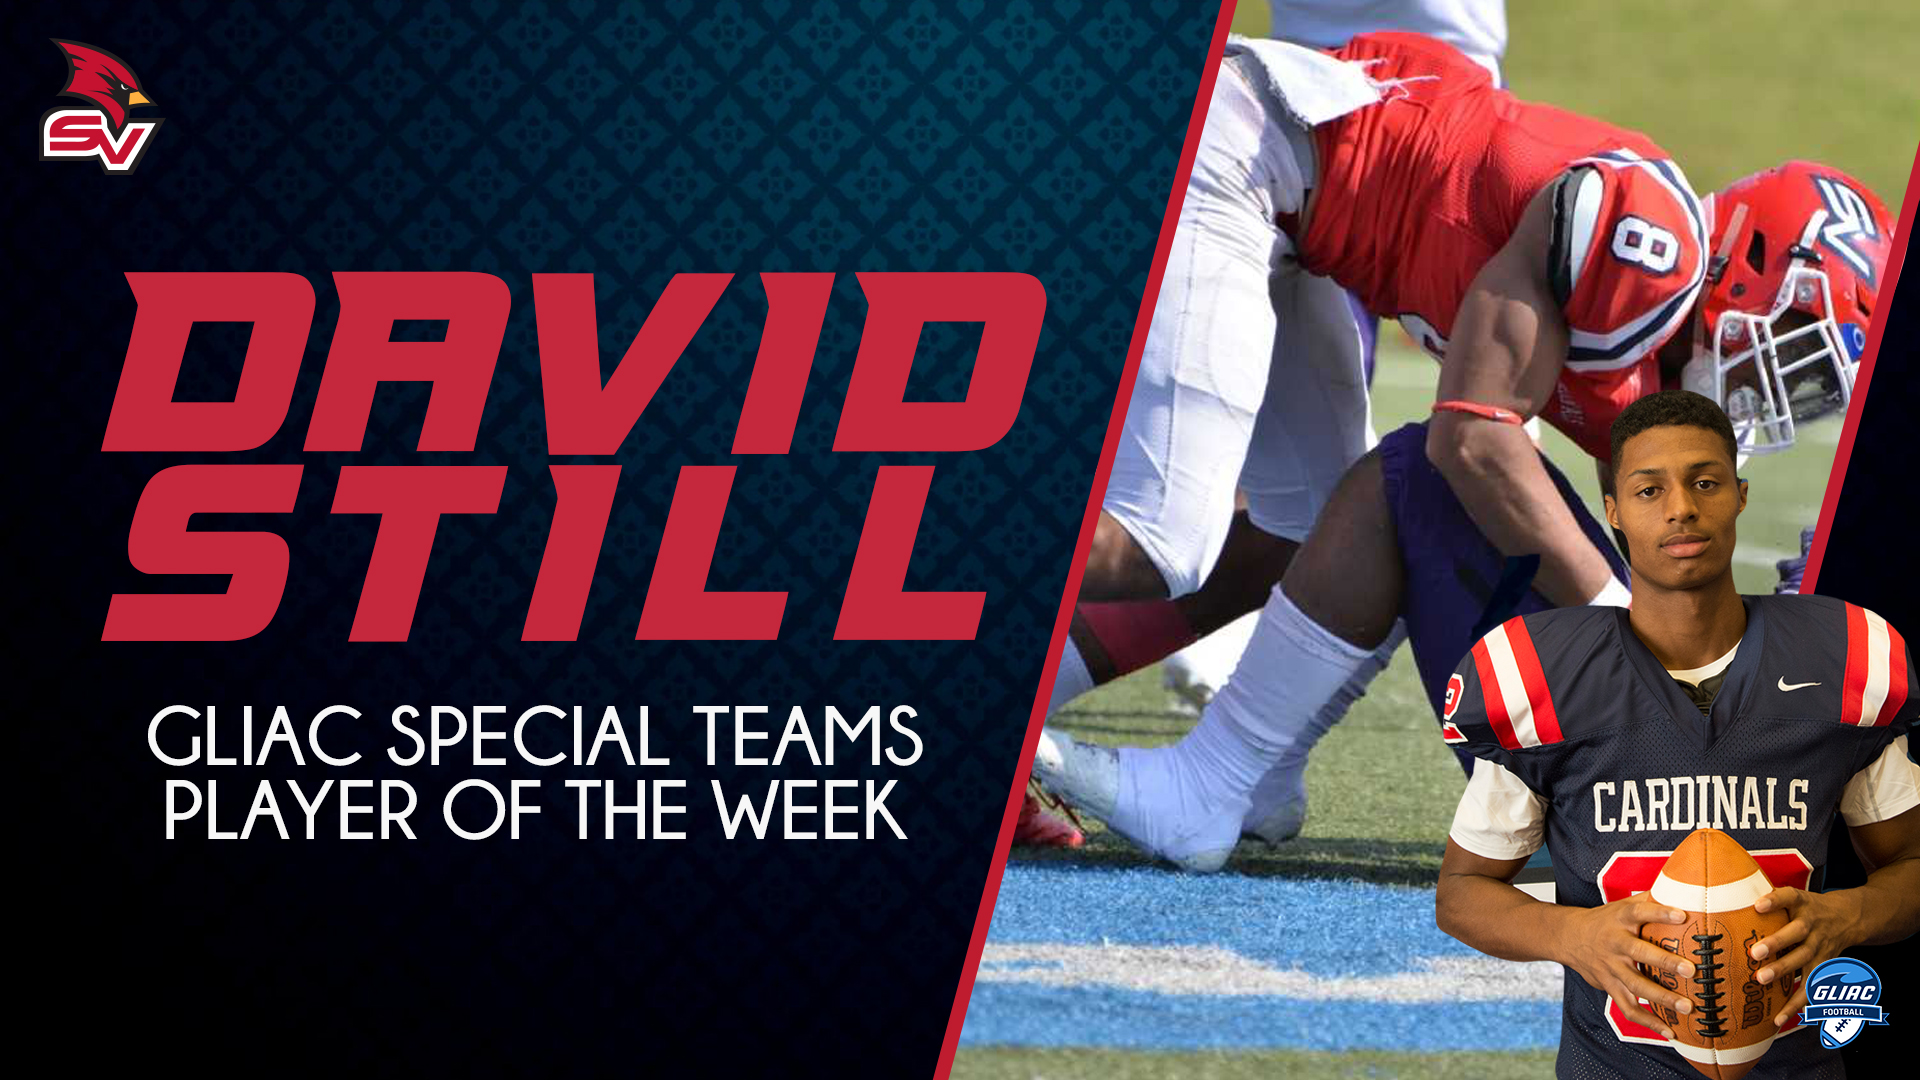 David Still Named GLIAC Special Teams Player of the Week